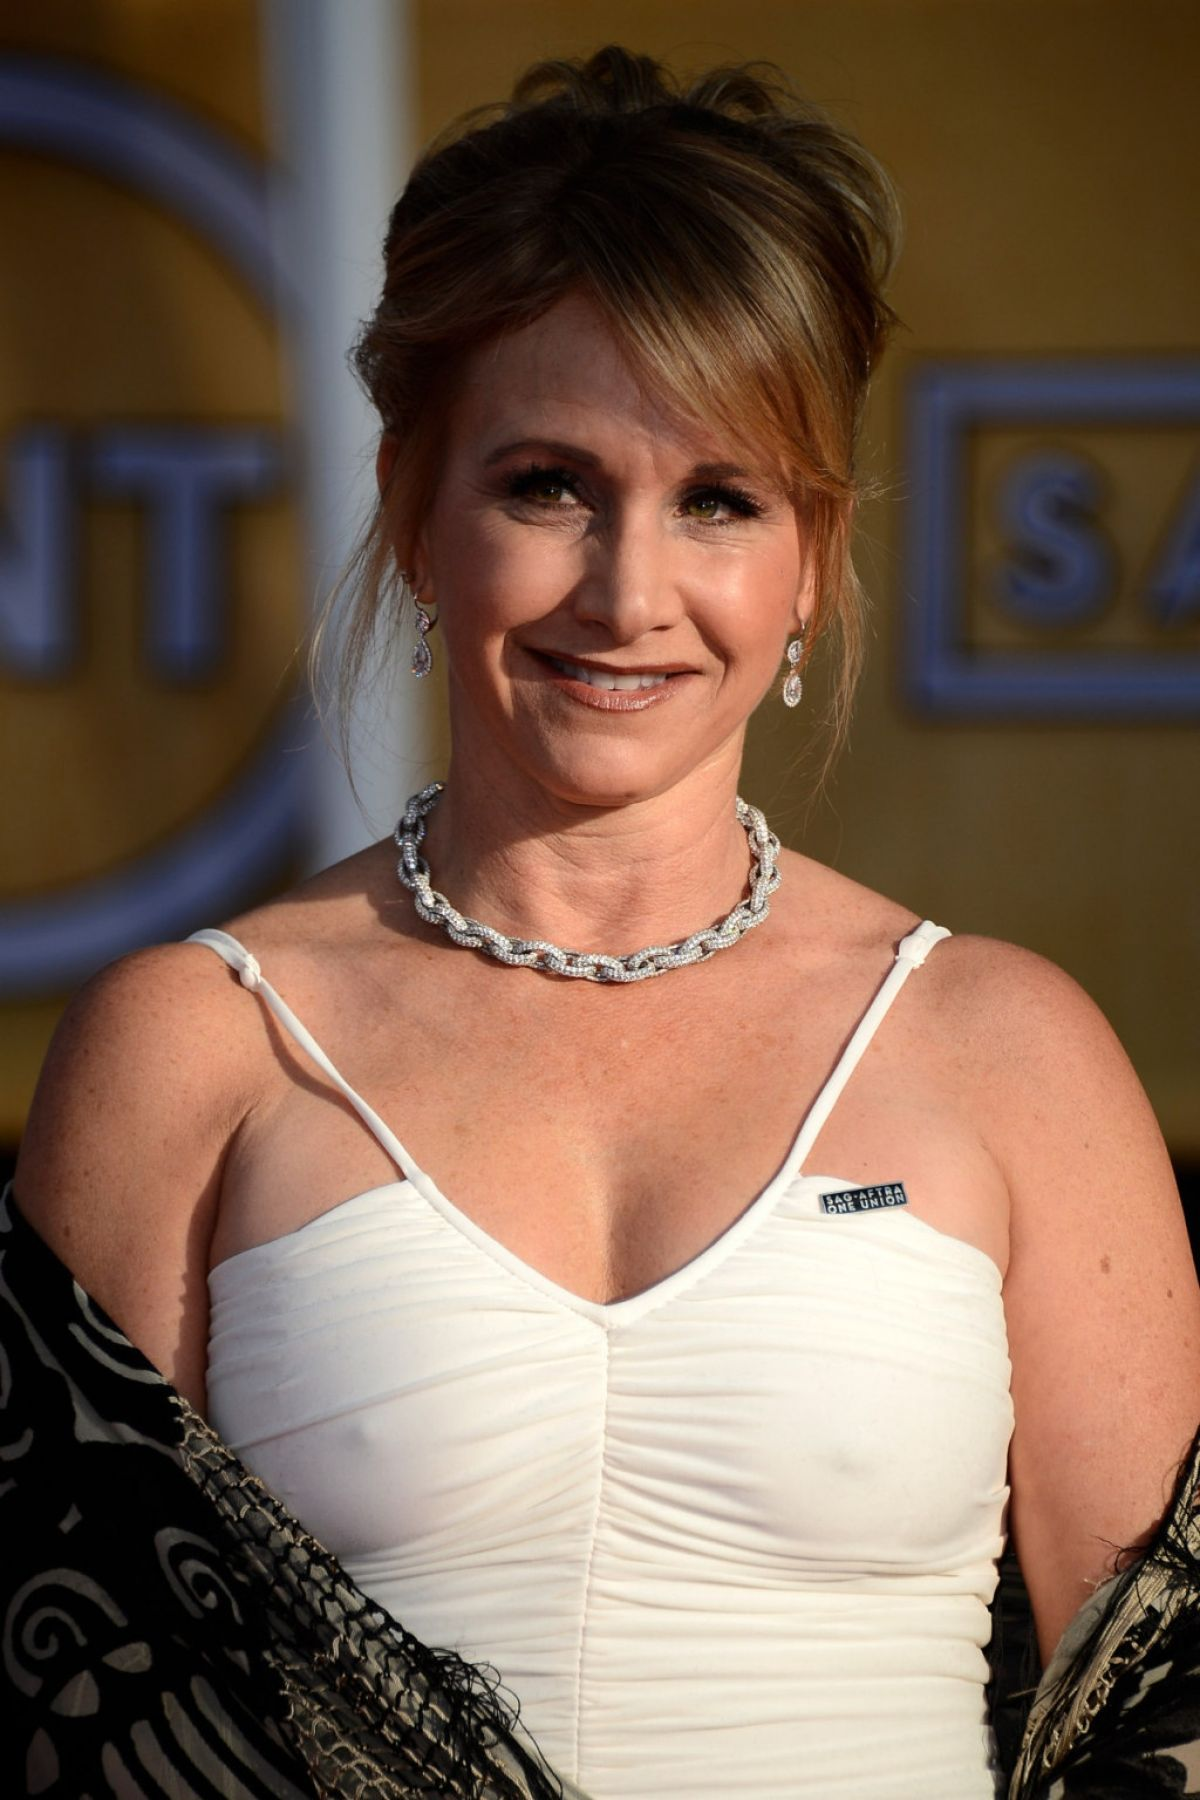 Gabrielle Carteris in addition Amsterdam EXPO Entree Volwassene € 16    Meer Info prijzen Hier together with Jennifer Metcalfe Lingerie in addition Howard Carter Google Logo  Ontdekker Graf Toetanchamon WebSonic as well Amenhotep II Mummy. on howard carter 2